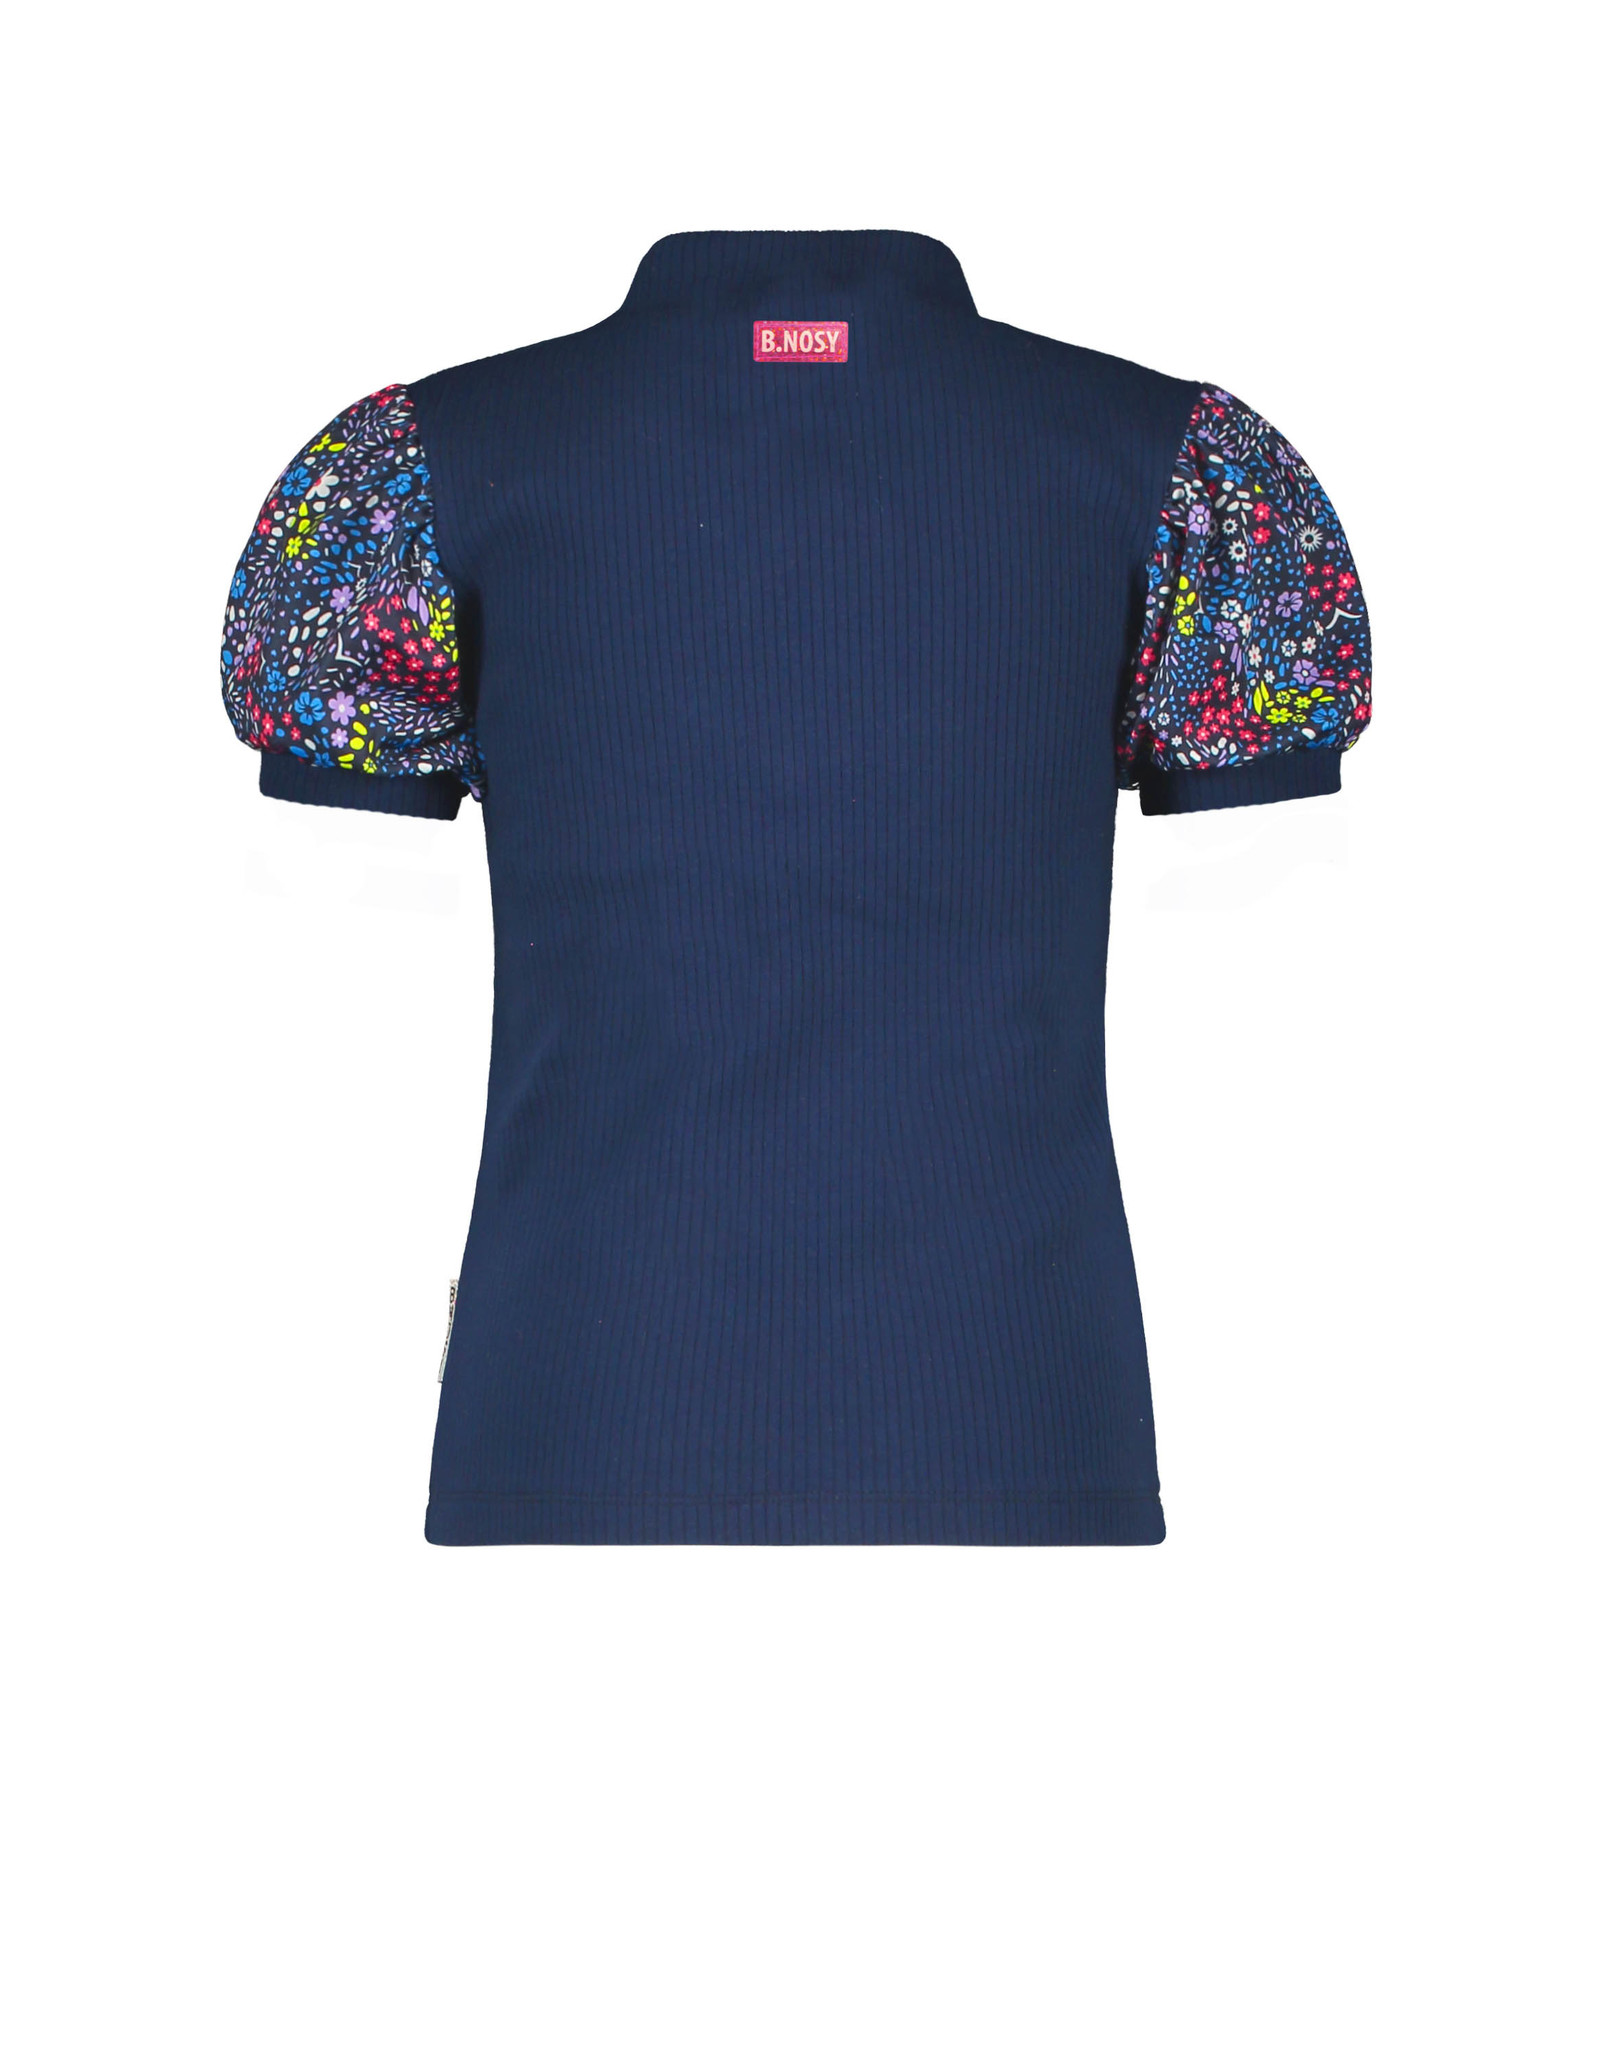 B.Nosy B. Nosy Girls SS Shirt With Puff Sleeves Space Blue